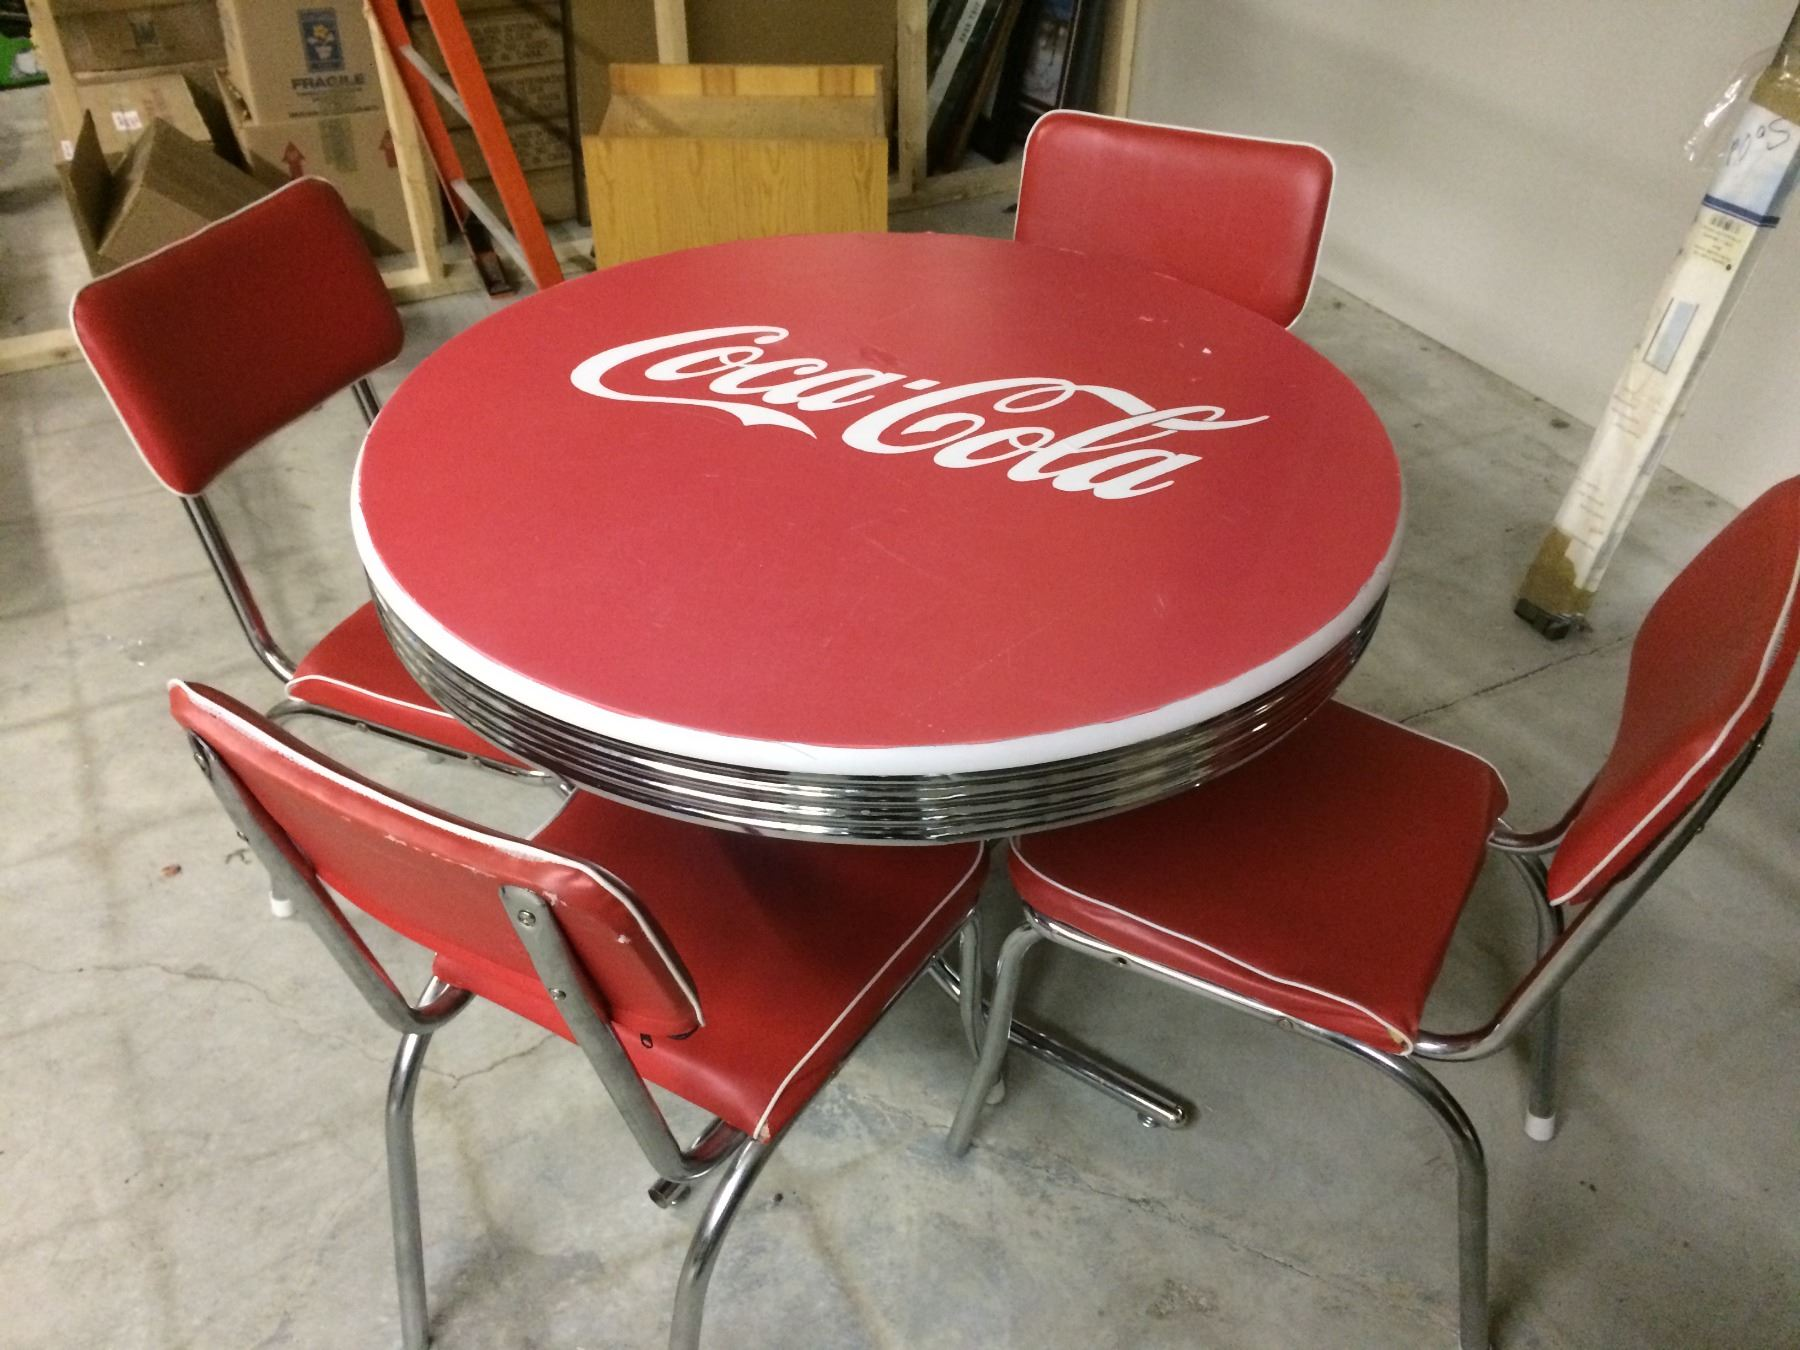 Vintage coca cola diner table w chairs - Coca cola table and chairs set ...